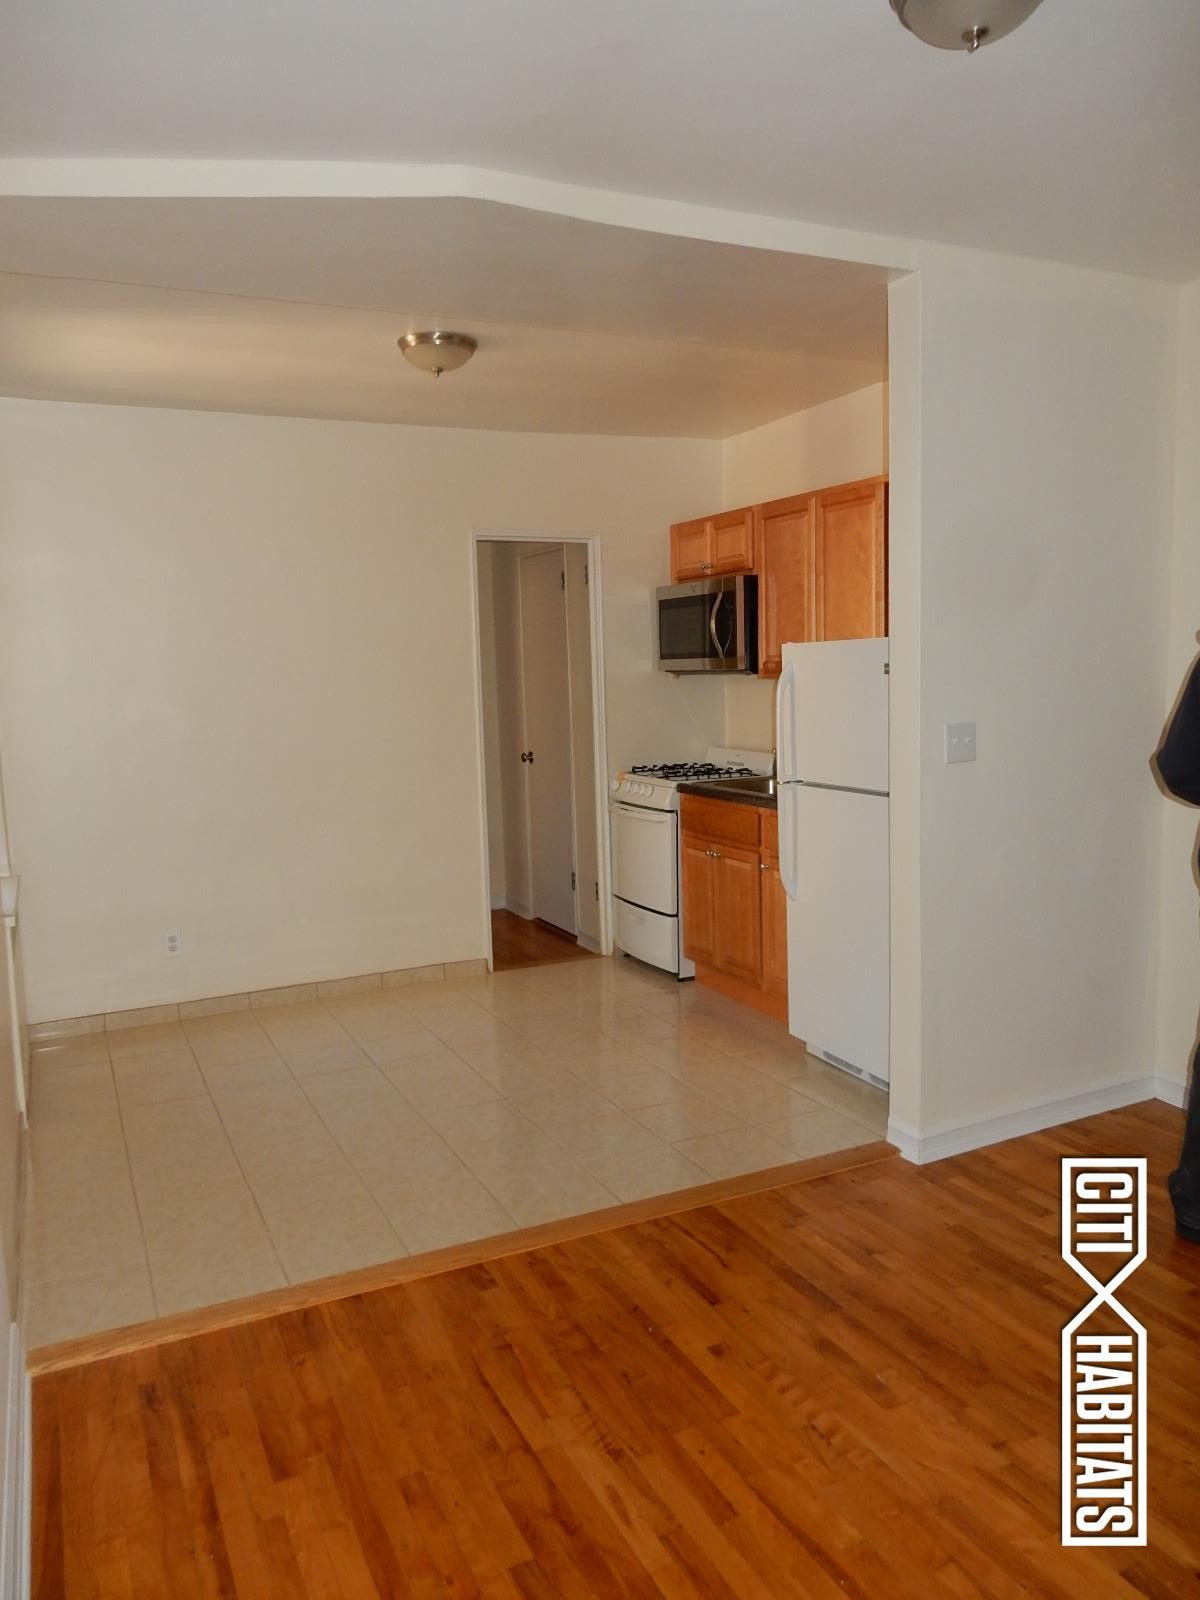 Kappock st 5a bronx ny 10463 1 bedroom apartment for for 1 bedroom apartments bronx